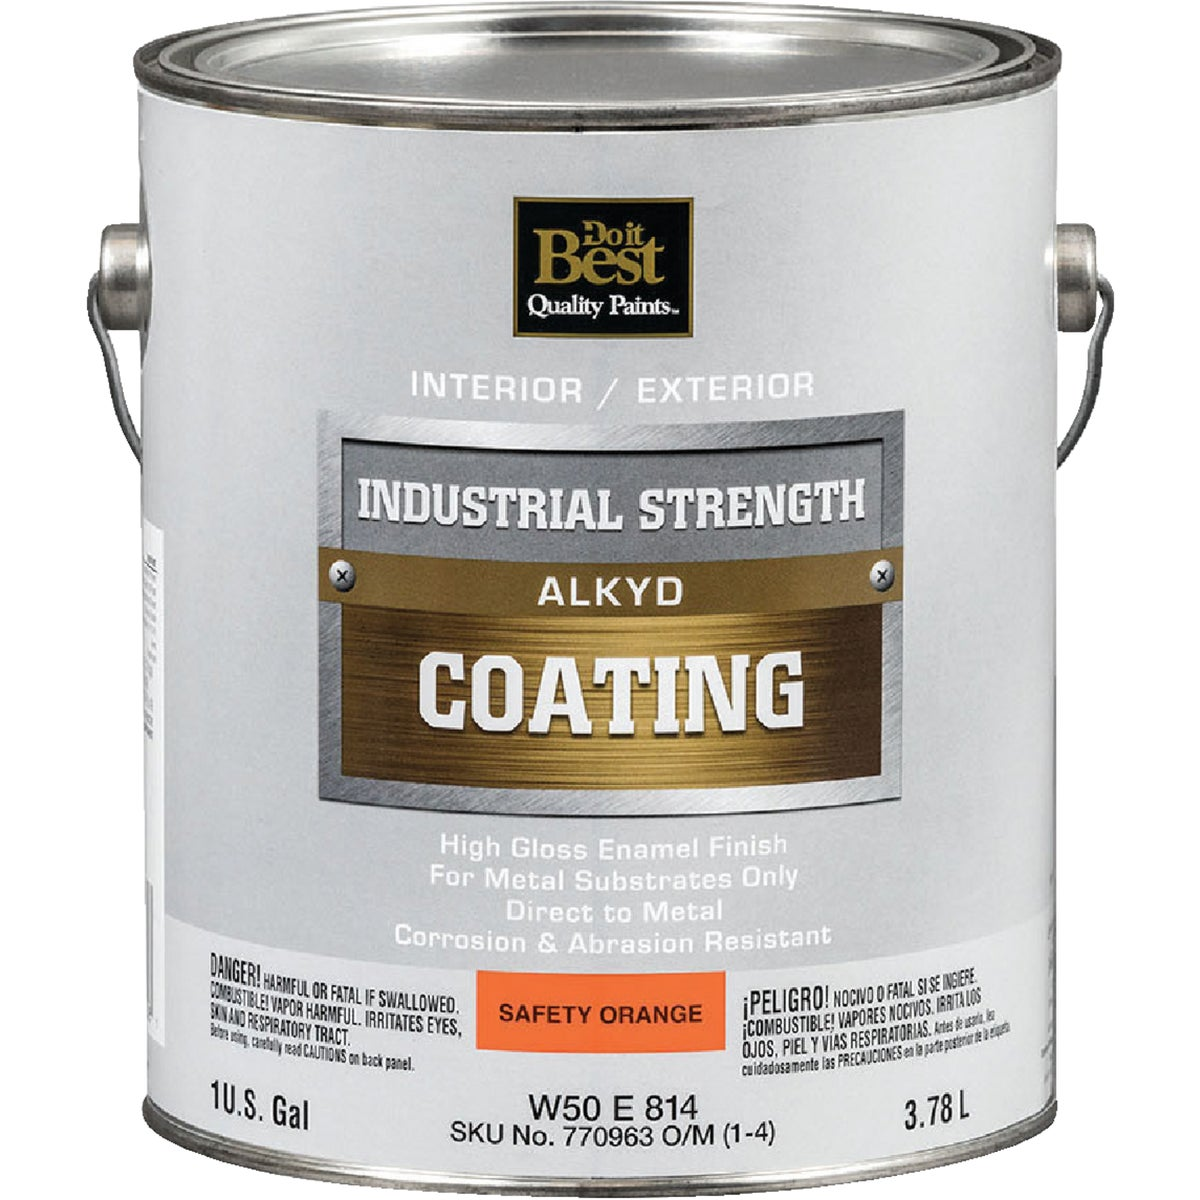 GLS SAF ORNG ALKYD PAINT - W50E00814-16 by Do it Best